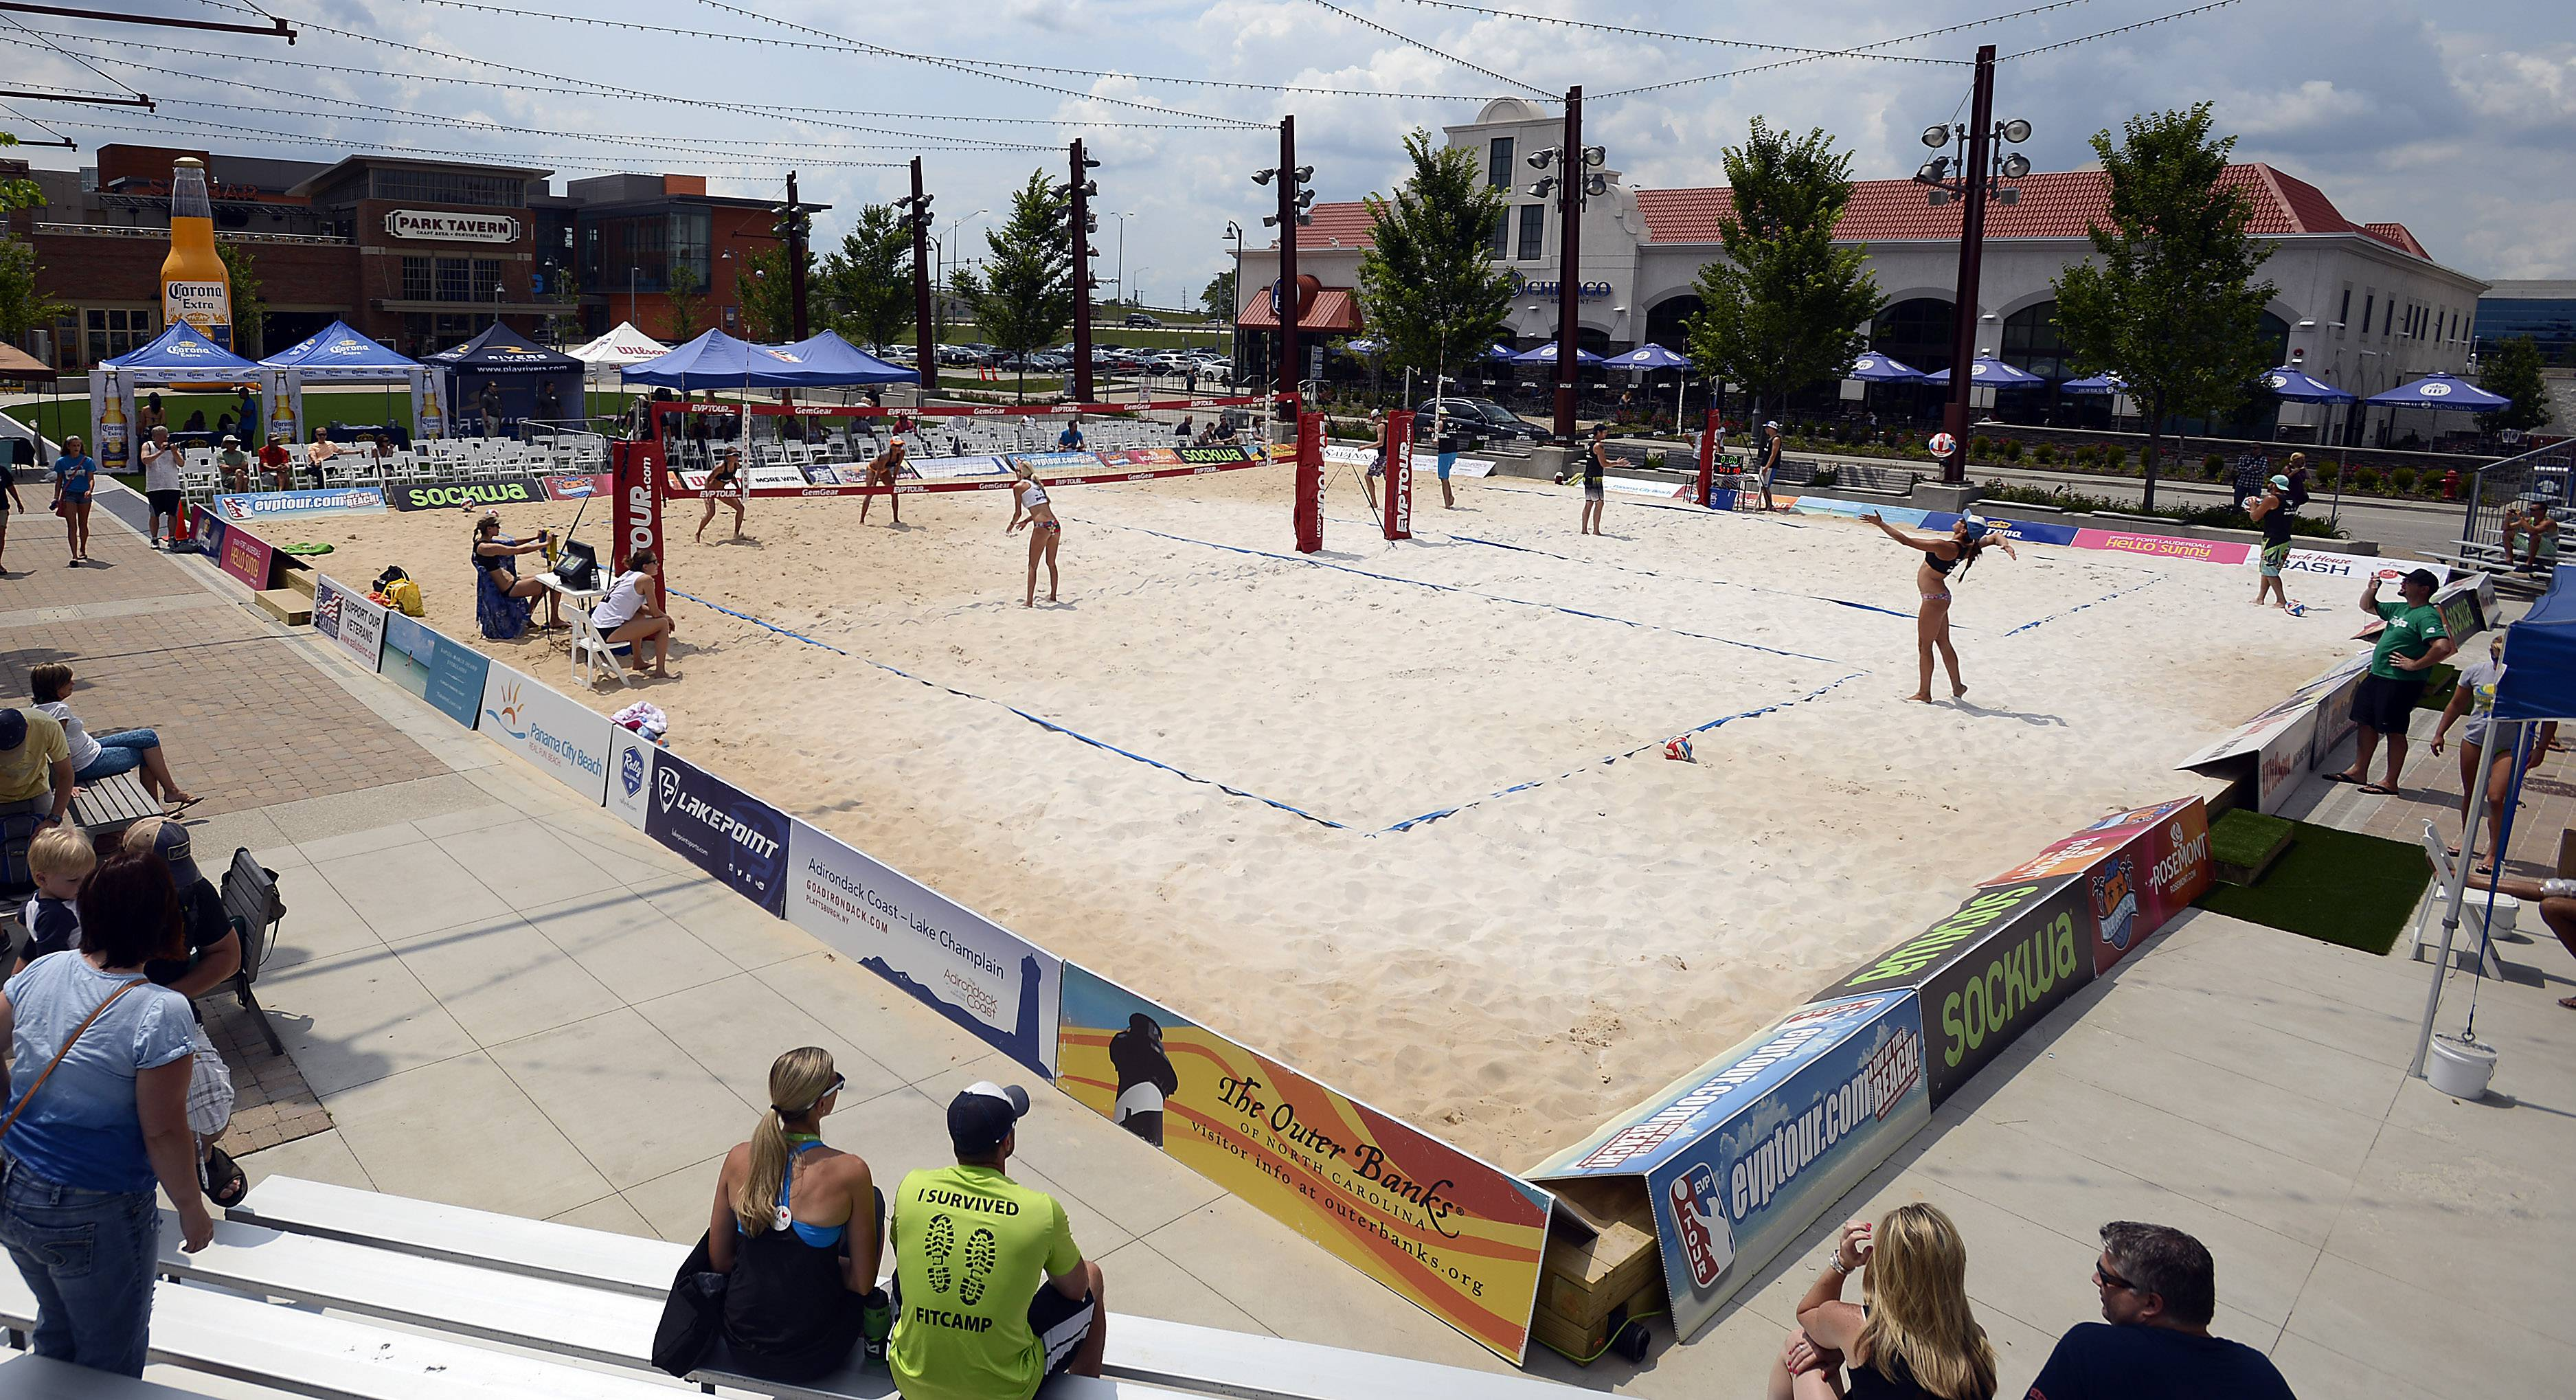 The EVP Rocks Rosemont professional beach volleyball tournament started Friday and continues today at MB Financial Park.